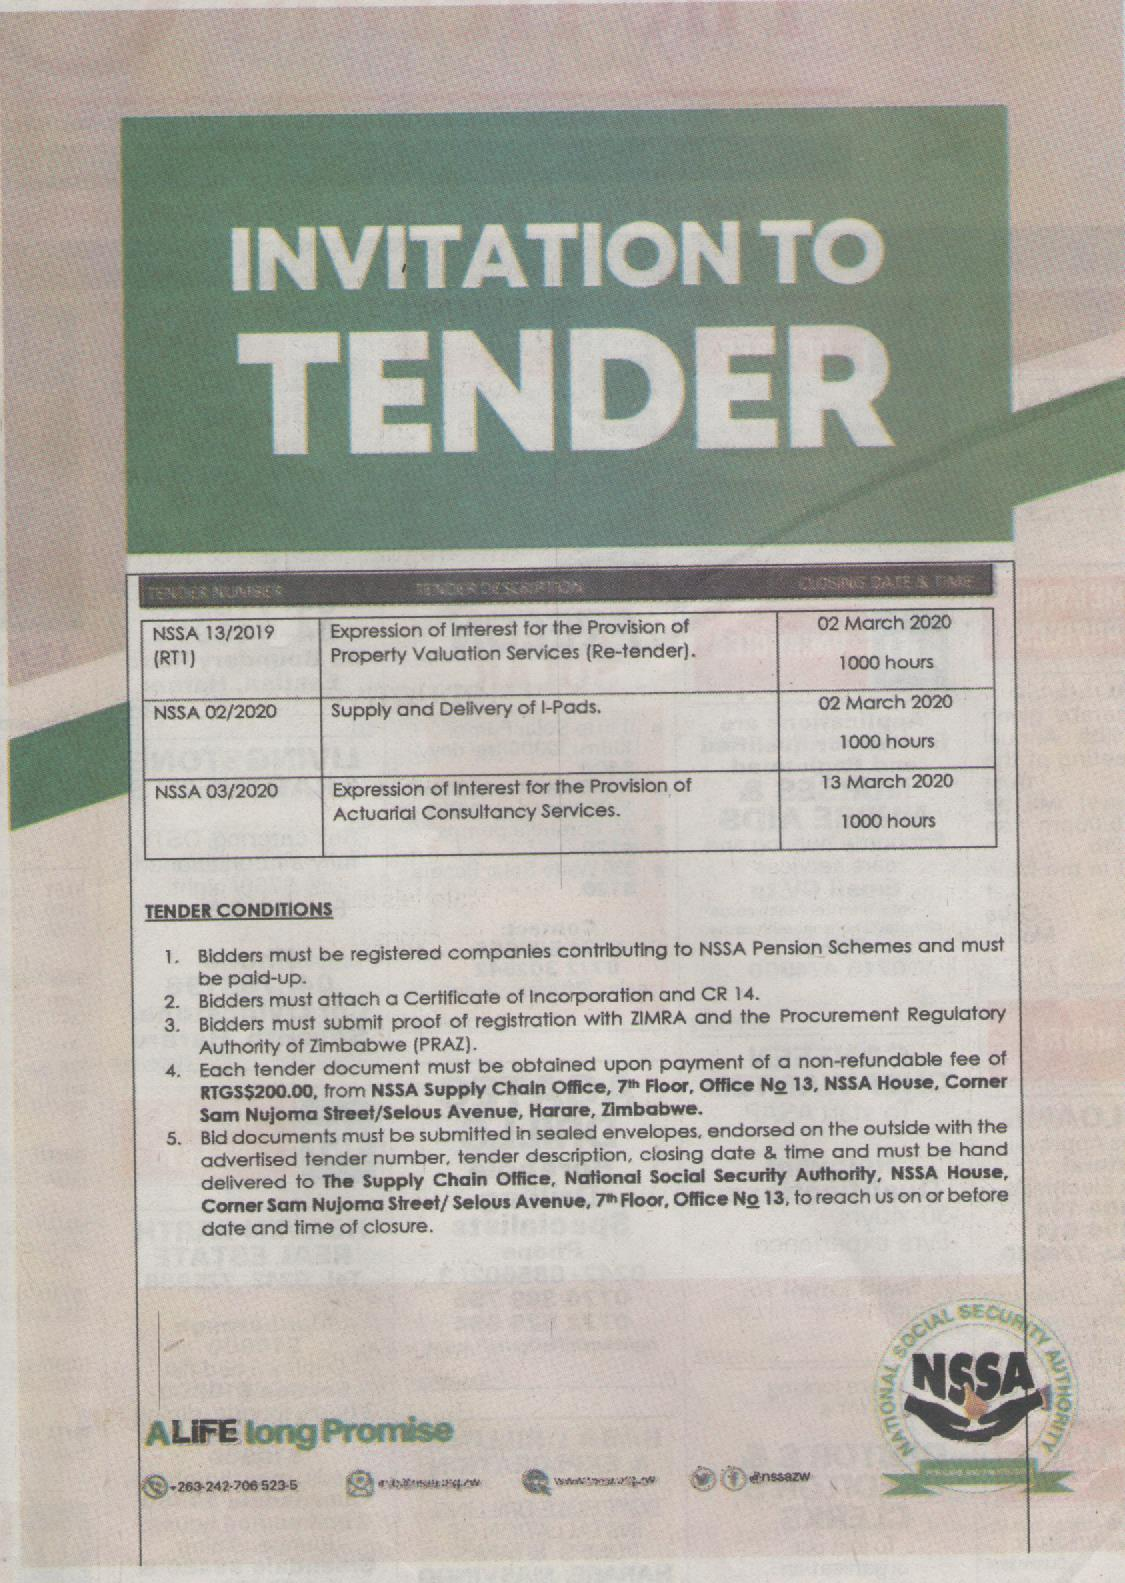 NSSA Invitation to Tender